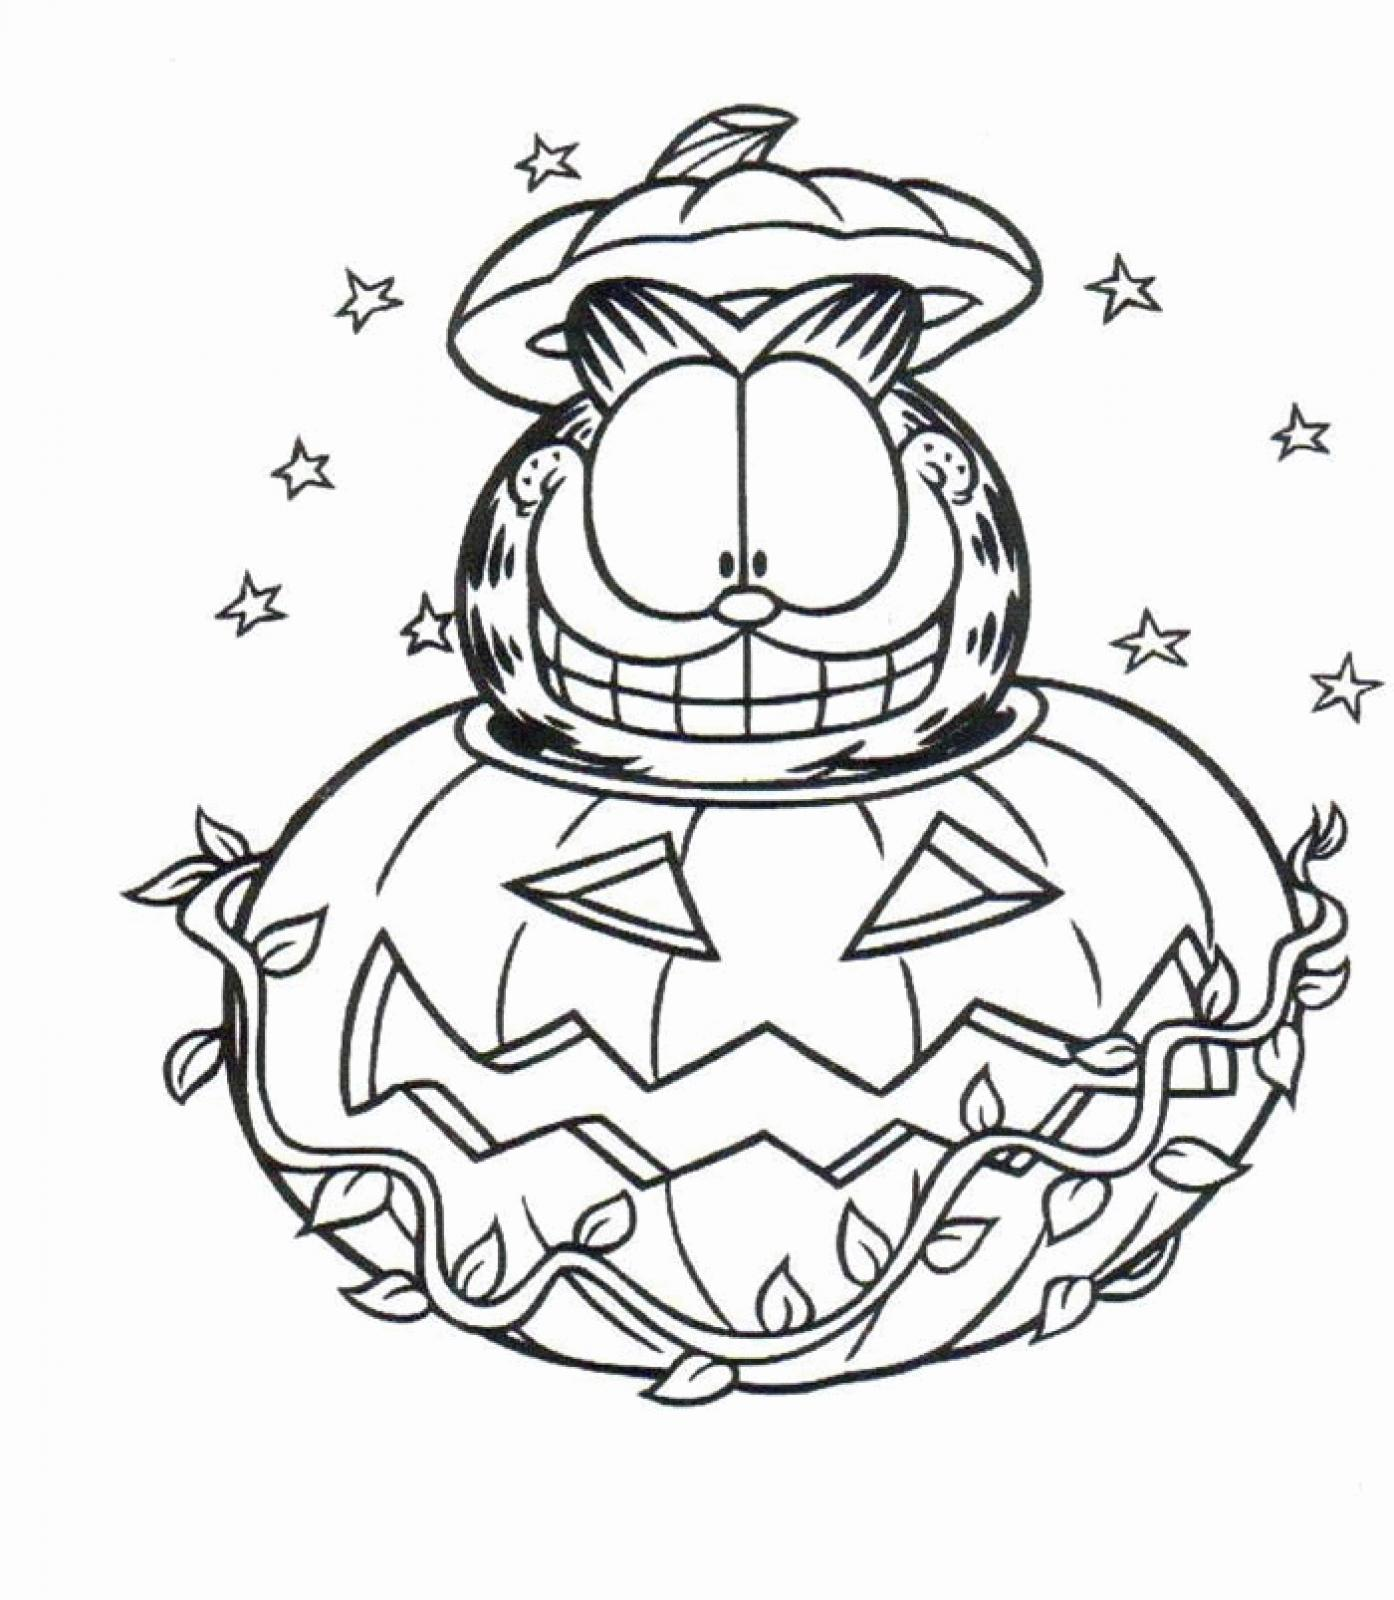 garfield and friends coloring pages - photo#31